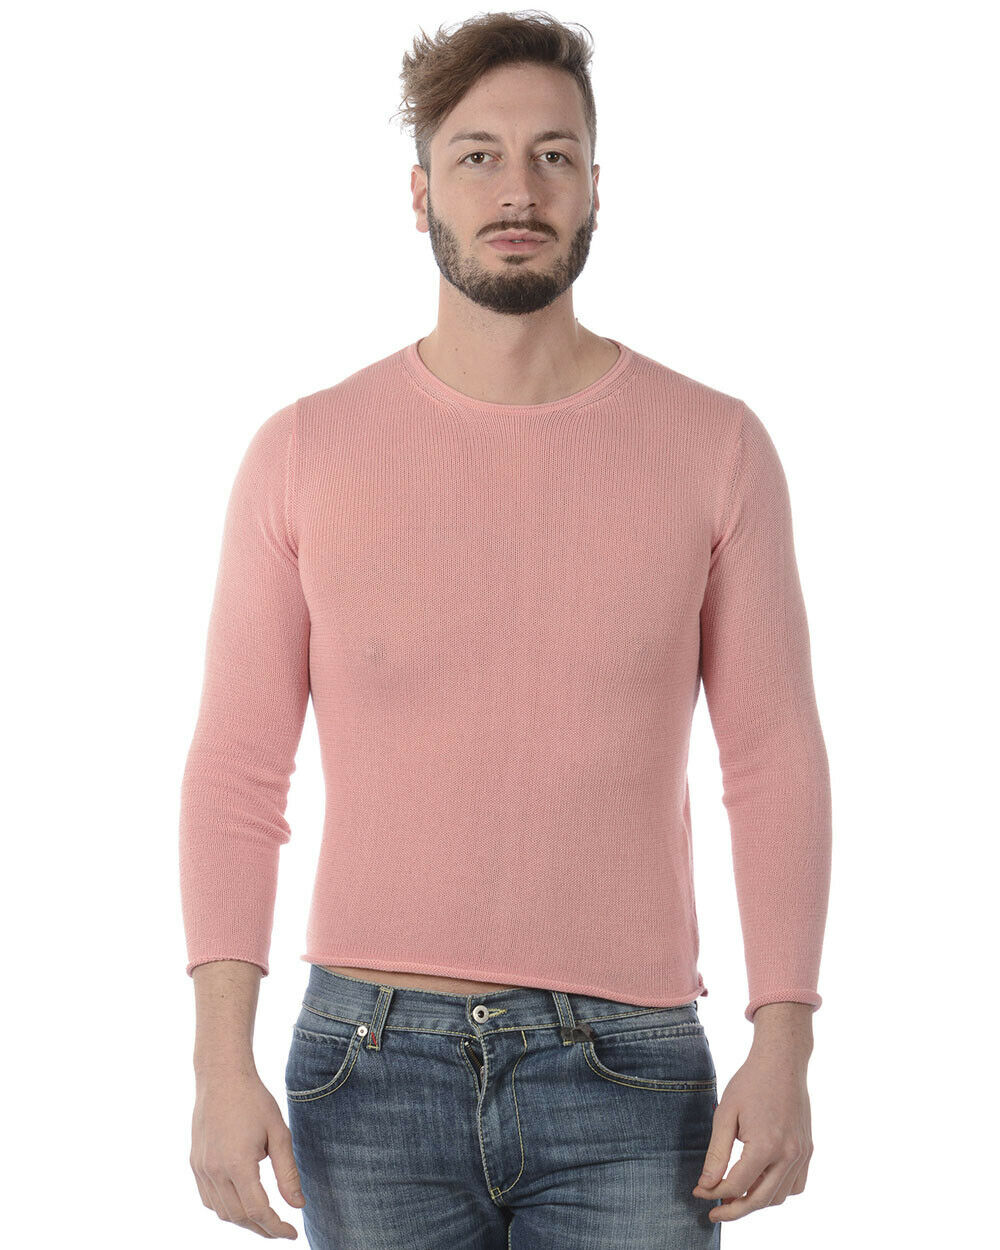 Daniele Alessandrini Sweater ITALY Man Rosa FMCL23701 58 Sz. 52 PUT OFFER